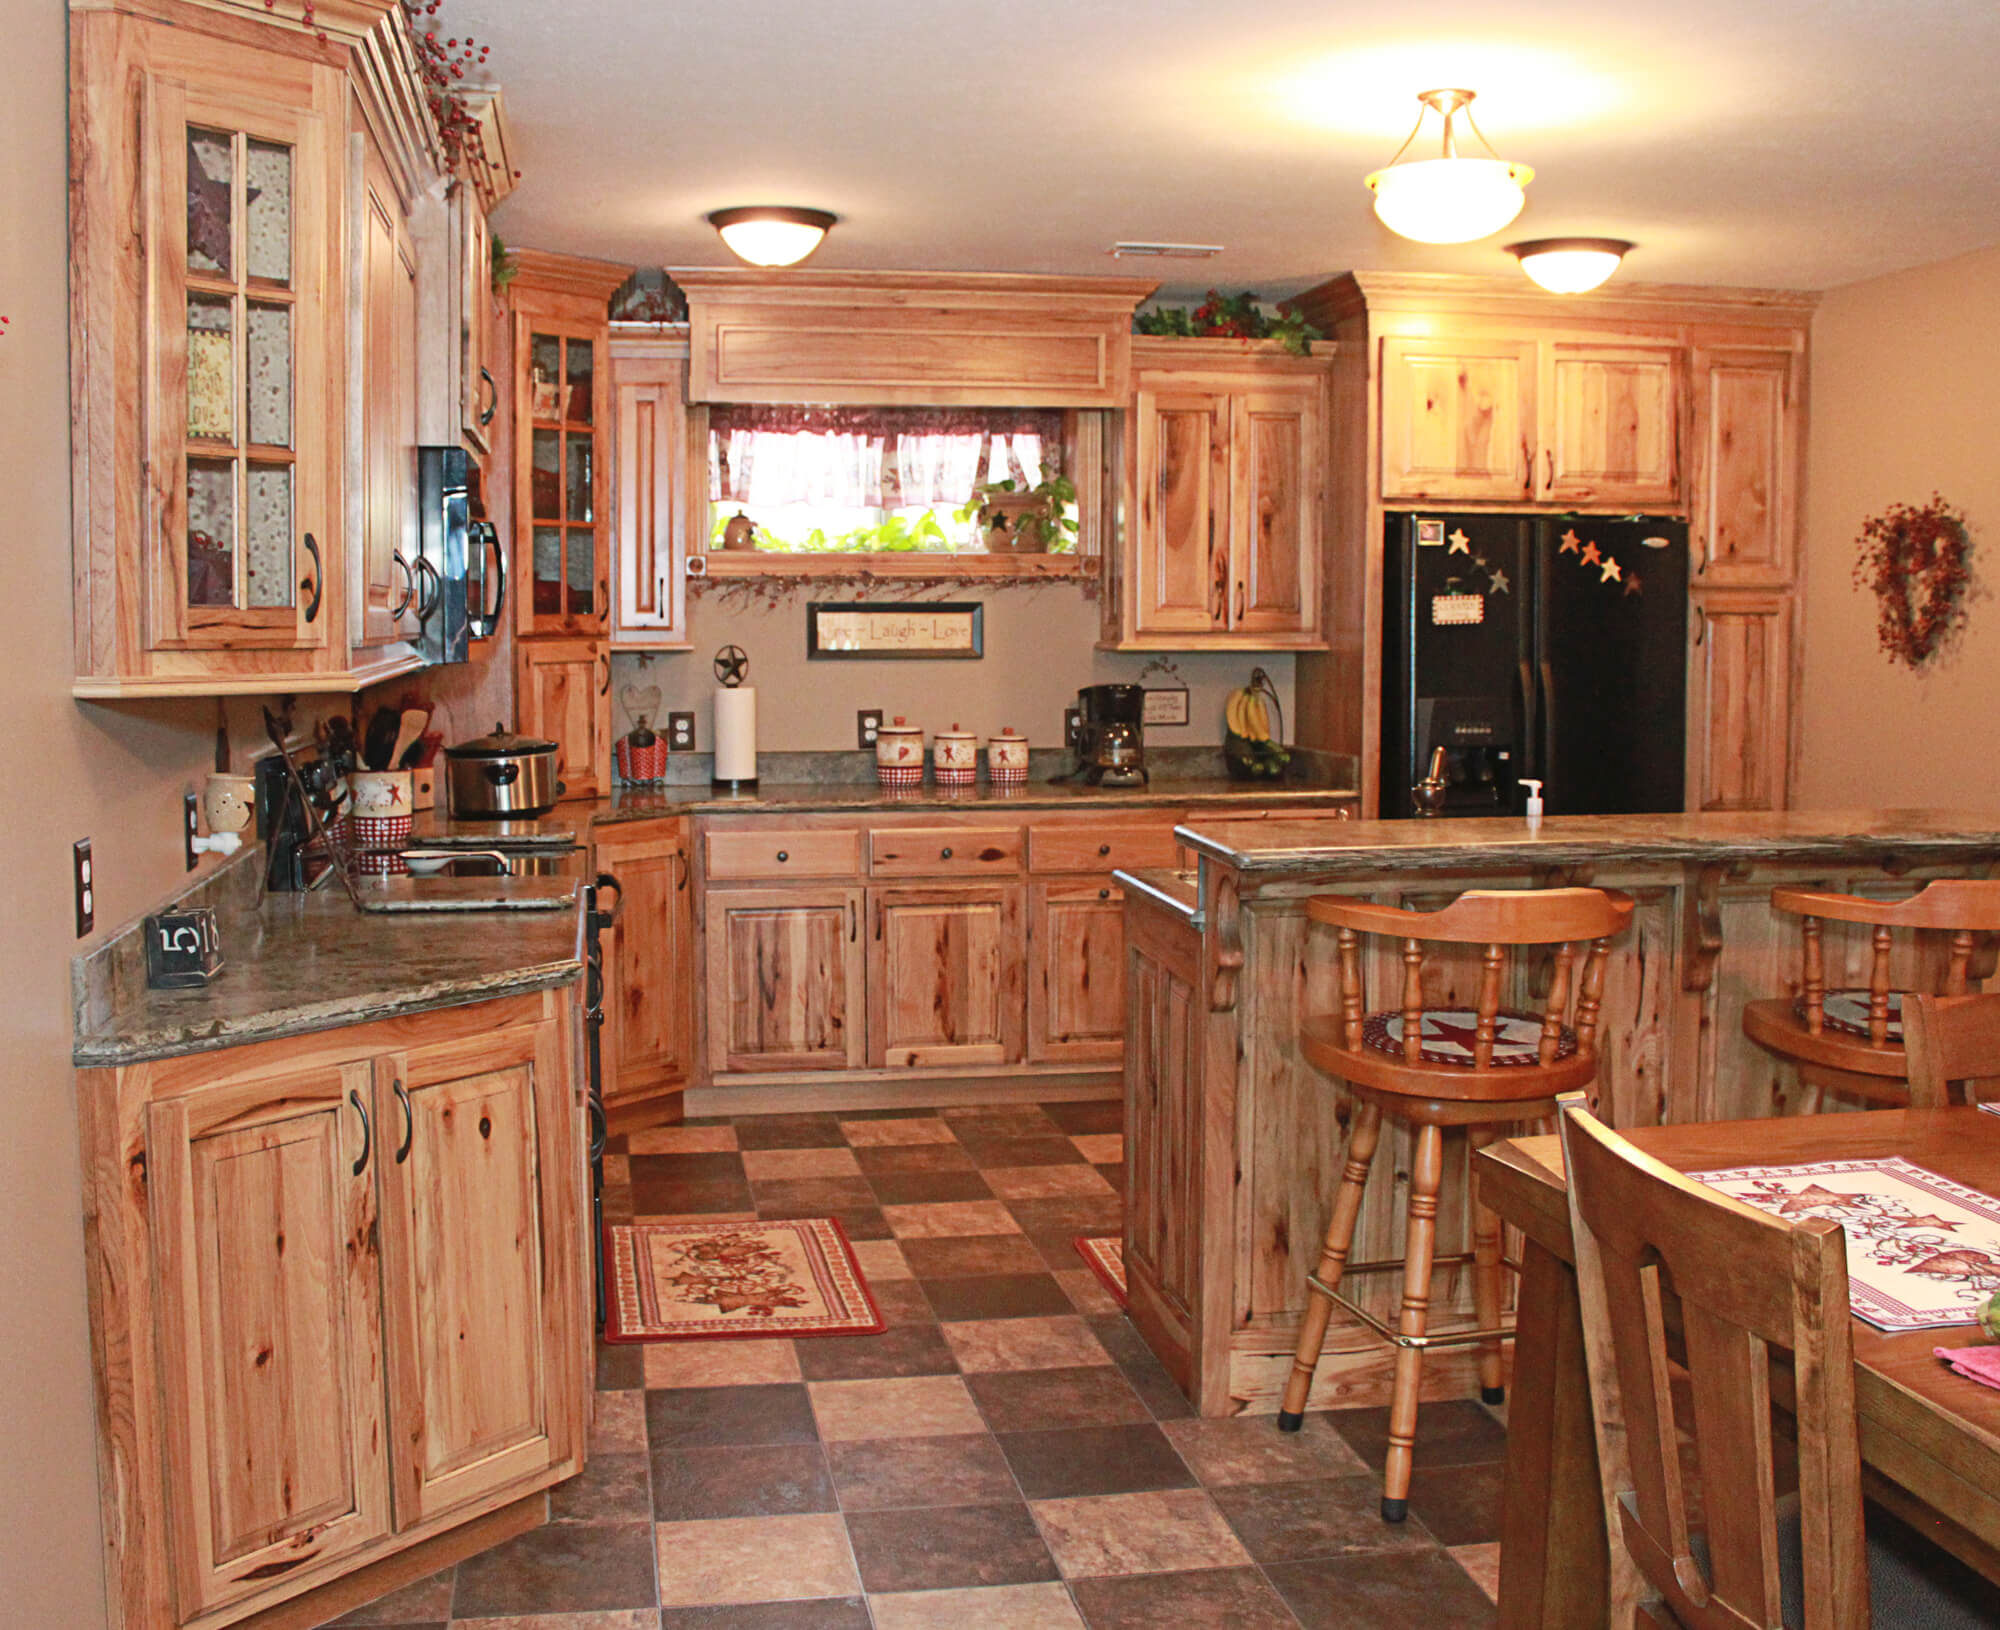 Hickory kitchen rustic hickory cabinets and hickory cabinets - Hickory Kitchen Rustic Hickory Cabinets And Hickory Cabinets 35